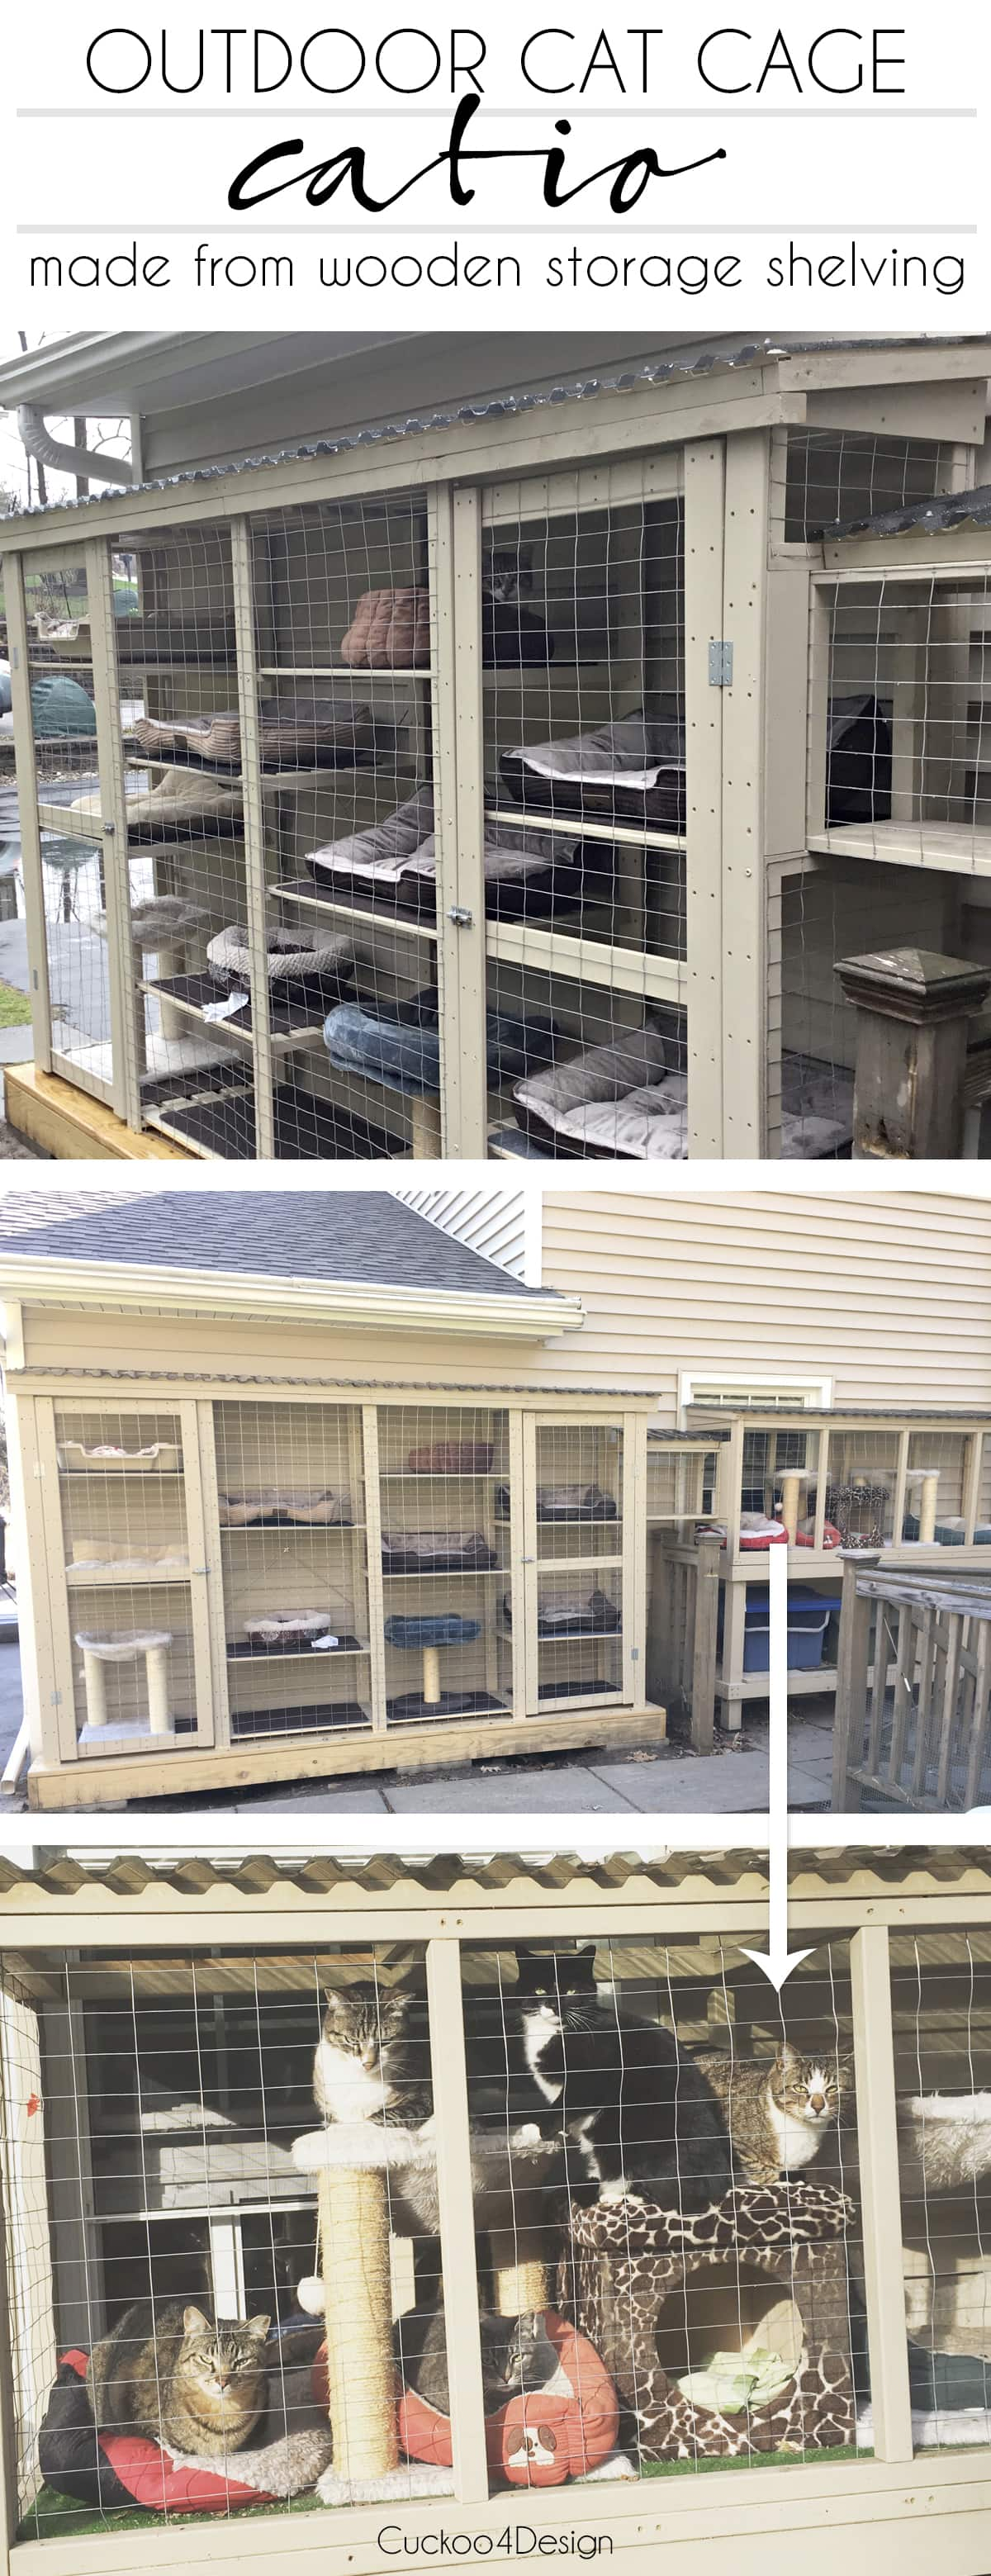 outdoor cat cage catio made from wooden shelving unit | cat enclosure attached to house | cat cage catio | cat cage | mesh outdoor cat enclosure connected to house | kitty walk cat enclosure | outdoor cat cage #catio #catenclosure #catDIY